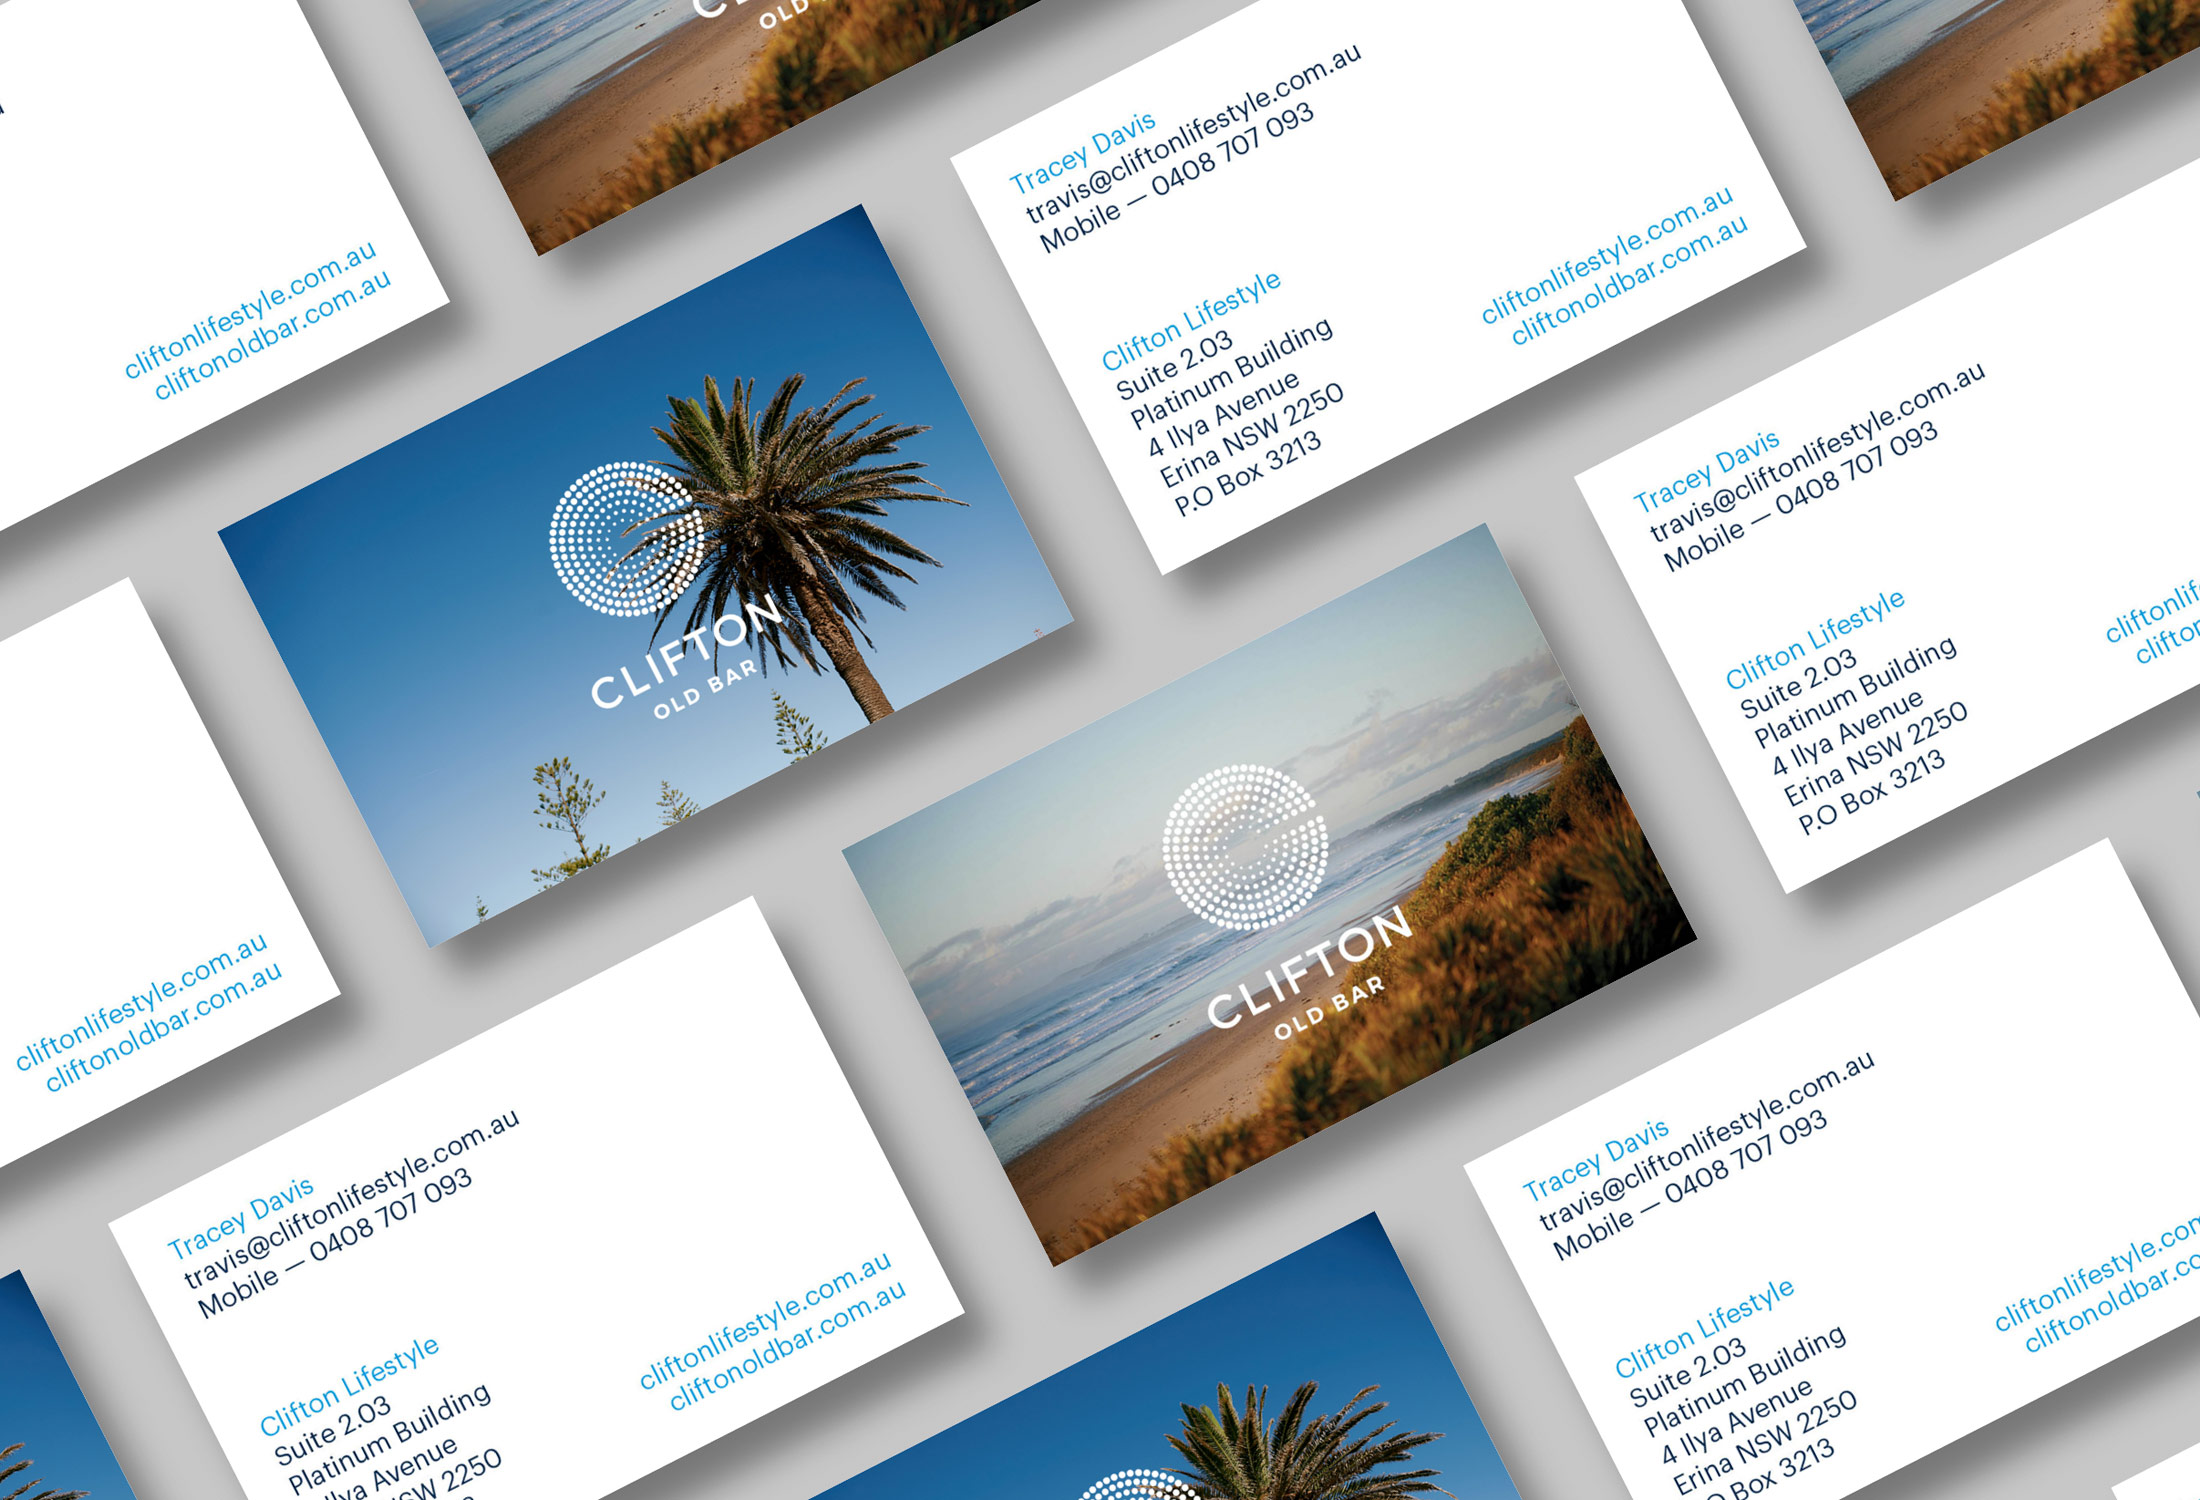 Clifton business cards